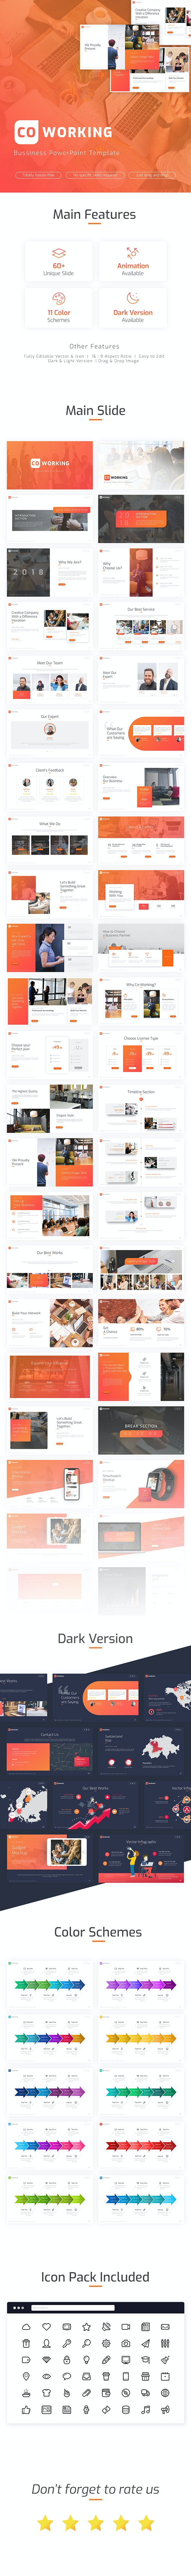 Coworking - Professional Powerpoint Template - Business PowerPoint Templates